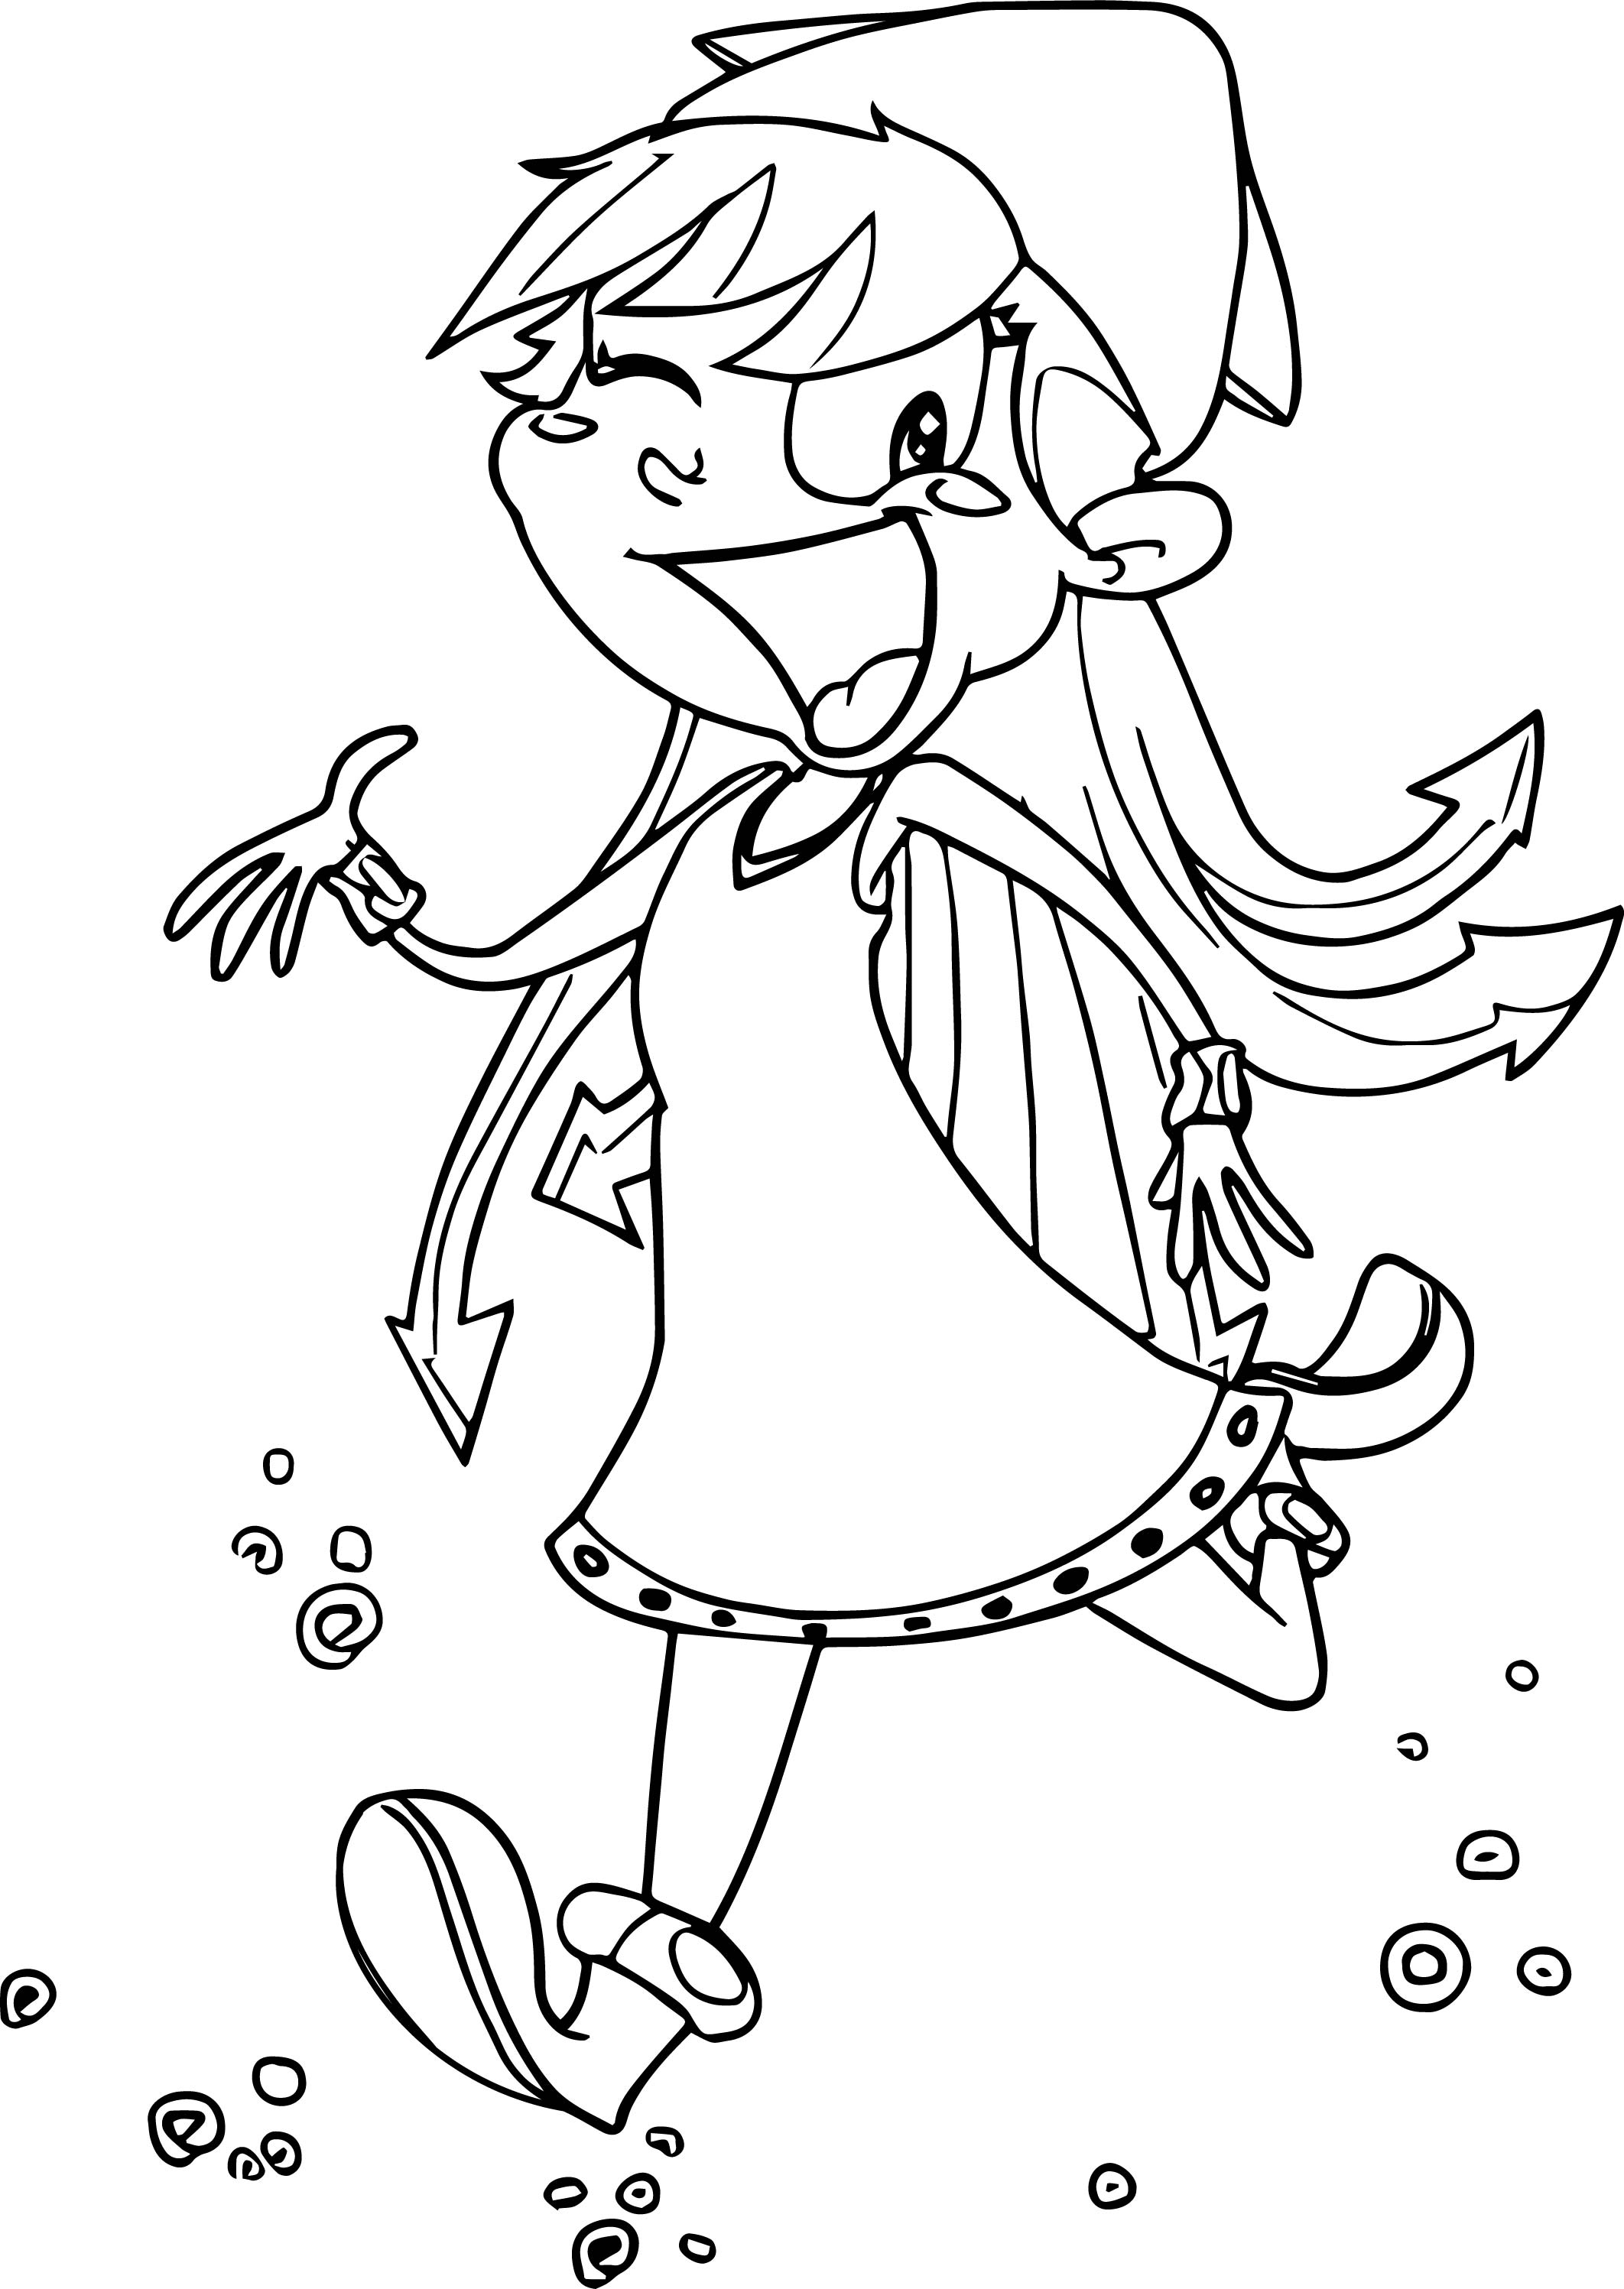 Running Squid Girl Coloring Page